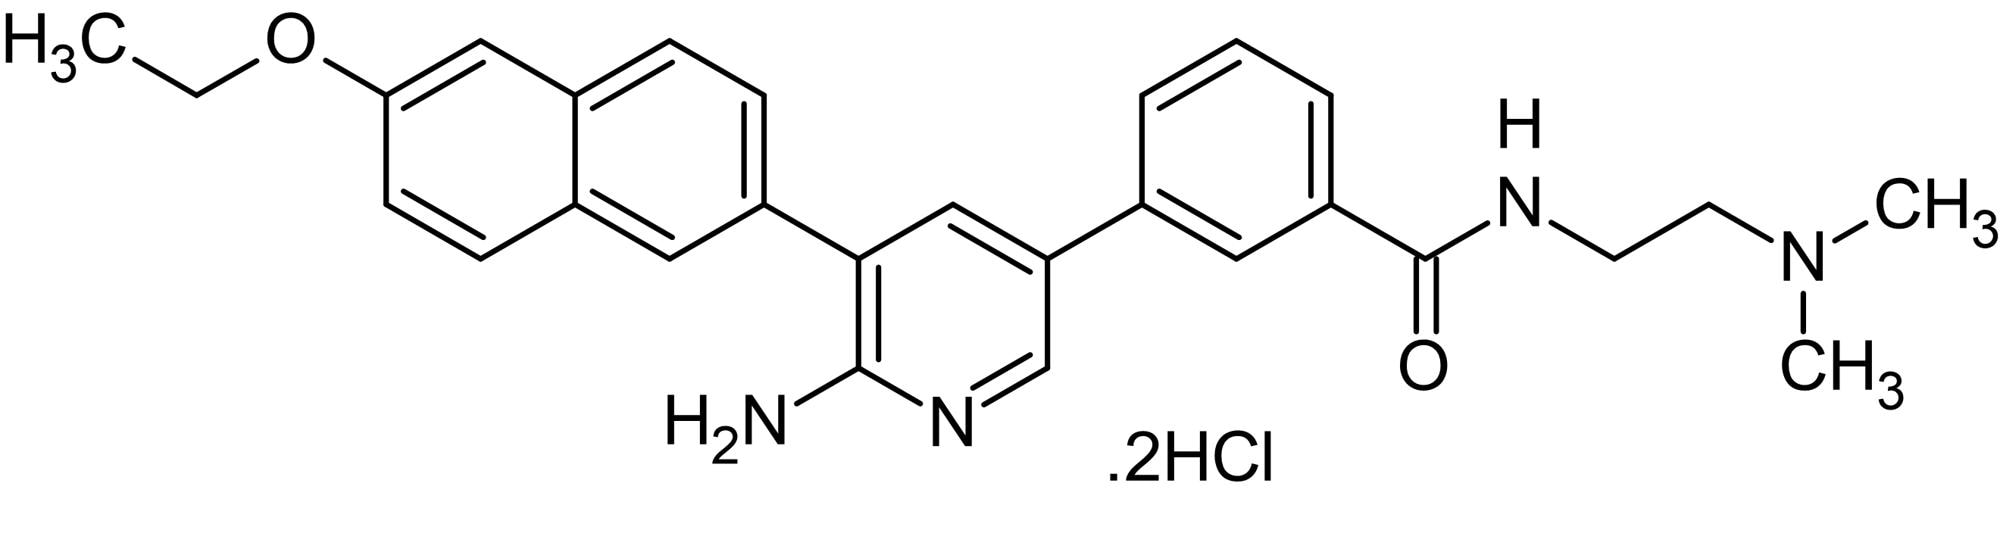 Chemical Structure - CRT5, protein kinase D inhibitor (ab146825)